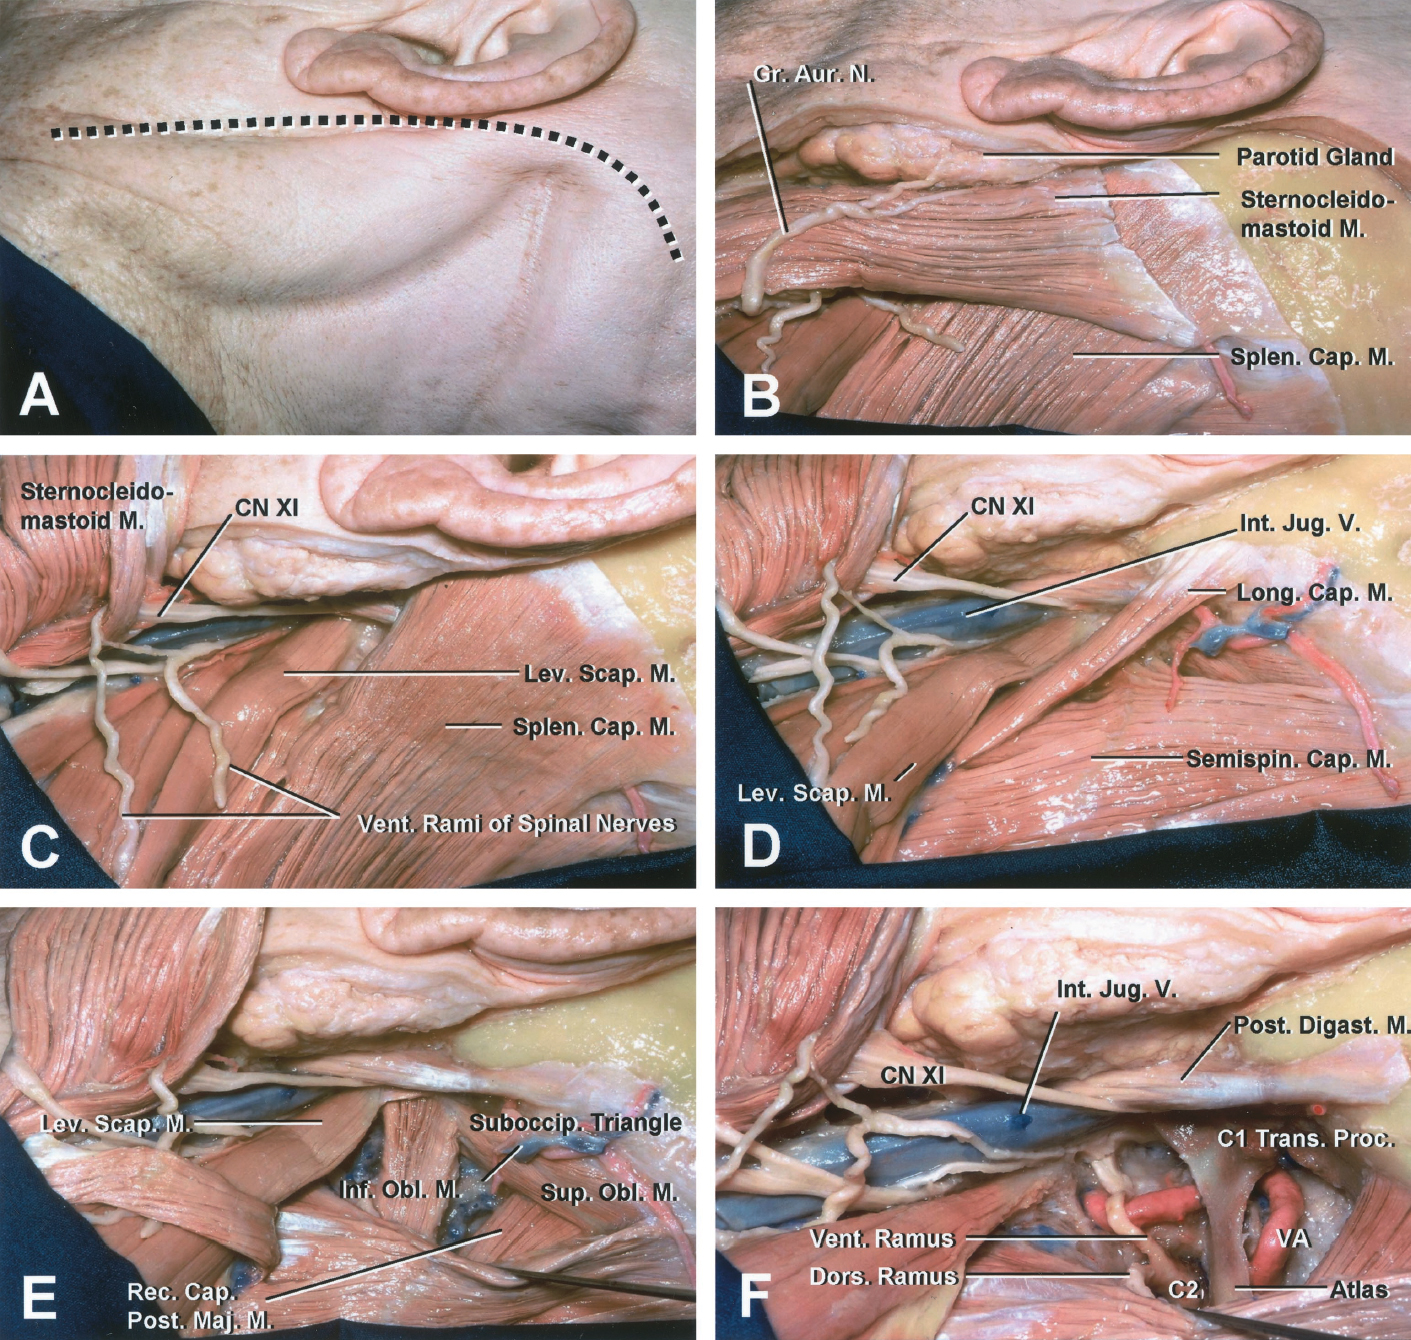 FIGURE 6 (A–F) . Extreme lateral atlanto-occipital transarticular approach: muscular (A–F) and extradural (G–N) stages. A, the skin incision starts approximately 6 cm below the tip of the mastoid process and follows the anterior border of the sternocleidomastoid muscle up to the level of the external acoustic meatus, where it curves posteriorly above the attachment of the muscle. B and C, the insertion of the sternocleidomastoid muscle is divided, leaving a musculofascial cuff attached to the mastoid process for closure. Care should be taken to identify the spinal accessory (XI) nerve, which runs in a fatty and lymphatic sheath that covers the deep aspect of the muscle. The average distance between the tip of the mastoid process and the accessory nerve entering the sternocleidomastoid muscle is 3.5 cm. Therefore, the upper few centimeters of the muscle can be dissected quickly, but the lower portion must be dissected carefully. Reflecting the sternocleidomastoid inferolaterally exposes the plane between the internal jugular vein and the sternocleidomastoid muscle. D and E, reflecting the splenius capitis, semispinalis capitis, and longissimus capitis muscles inferomedially exposes the suboccipital triangle and the attachment of the superior and inferior oblique, the rectus capitis lateralis, and the levator scapulae muscles to the transverse process of the atlas. The transverse process of the atlas can be palpated in the exposure. F, reflecting the muscles forming the suboccipital triangle exposes the vertebral artery between the transverse foramen of the axis and the point where it penetrates the dura mater. The C2 nerve root is exposed between the atlas and the axis. The posterior belly of the digastric muscle is preserved to protect the facial nerve. A-O, atlanto-occipital; Ant., anterior; Art., articular; Aur., auricular; Br., branch; Cap., capitis; CN, cranial nerve; Cond., condyle; Cont., contralateral; Digast., digastric; Dors., dorsal; For., foramen; Gr., great; Inf., inferior; Int., internal; Jug., jugular; Lat., lateralis; Lev., levator; Long., longissimus or longus; M., muscle; Maj., major; N., nerve; OA, occipital artery; Obl., oblique; Occip., occipital; Post., posterior; Proc., process; Rec., rectus; Scap., scapula; Semispin., semispinalis; Splen., splenius; Sternocleidomas., sternocleidomastoid; Suboccip., suboccipital; Sup., superior; Trans., transverse; V., vein; VA, vertebral artery; Vent., ventral. (Images courtesy of AL Rhoton, Jr.)